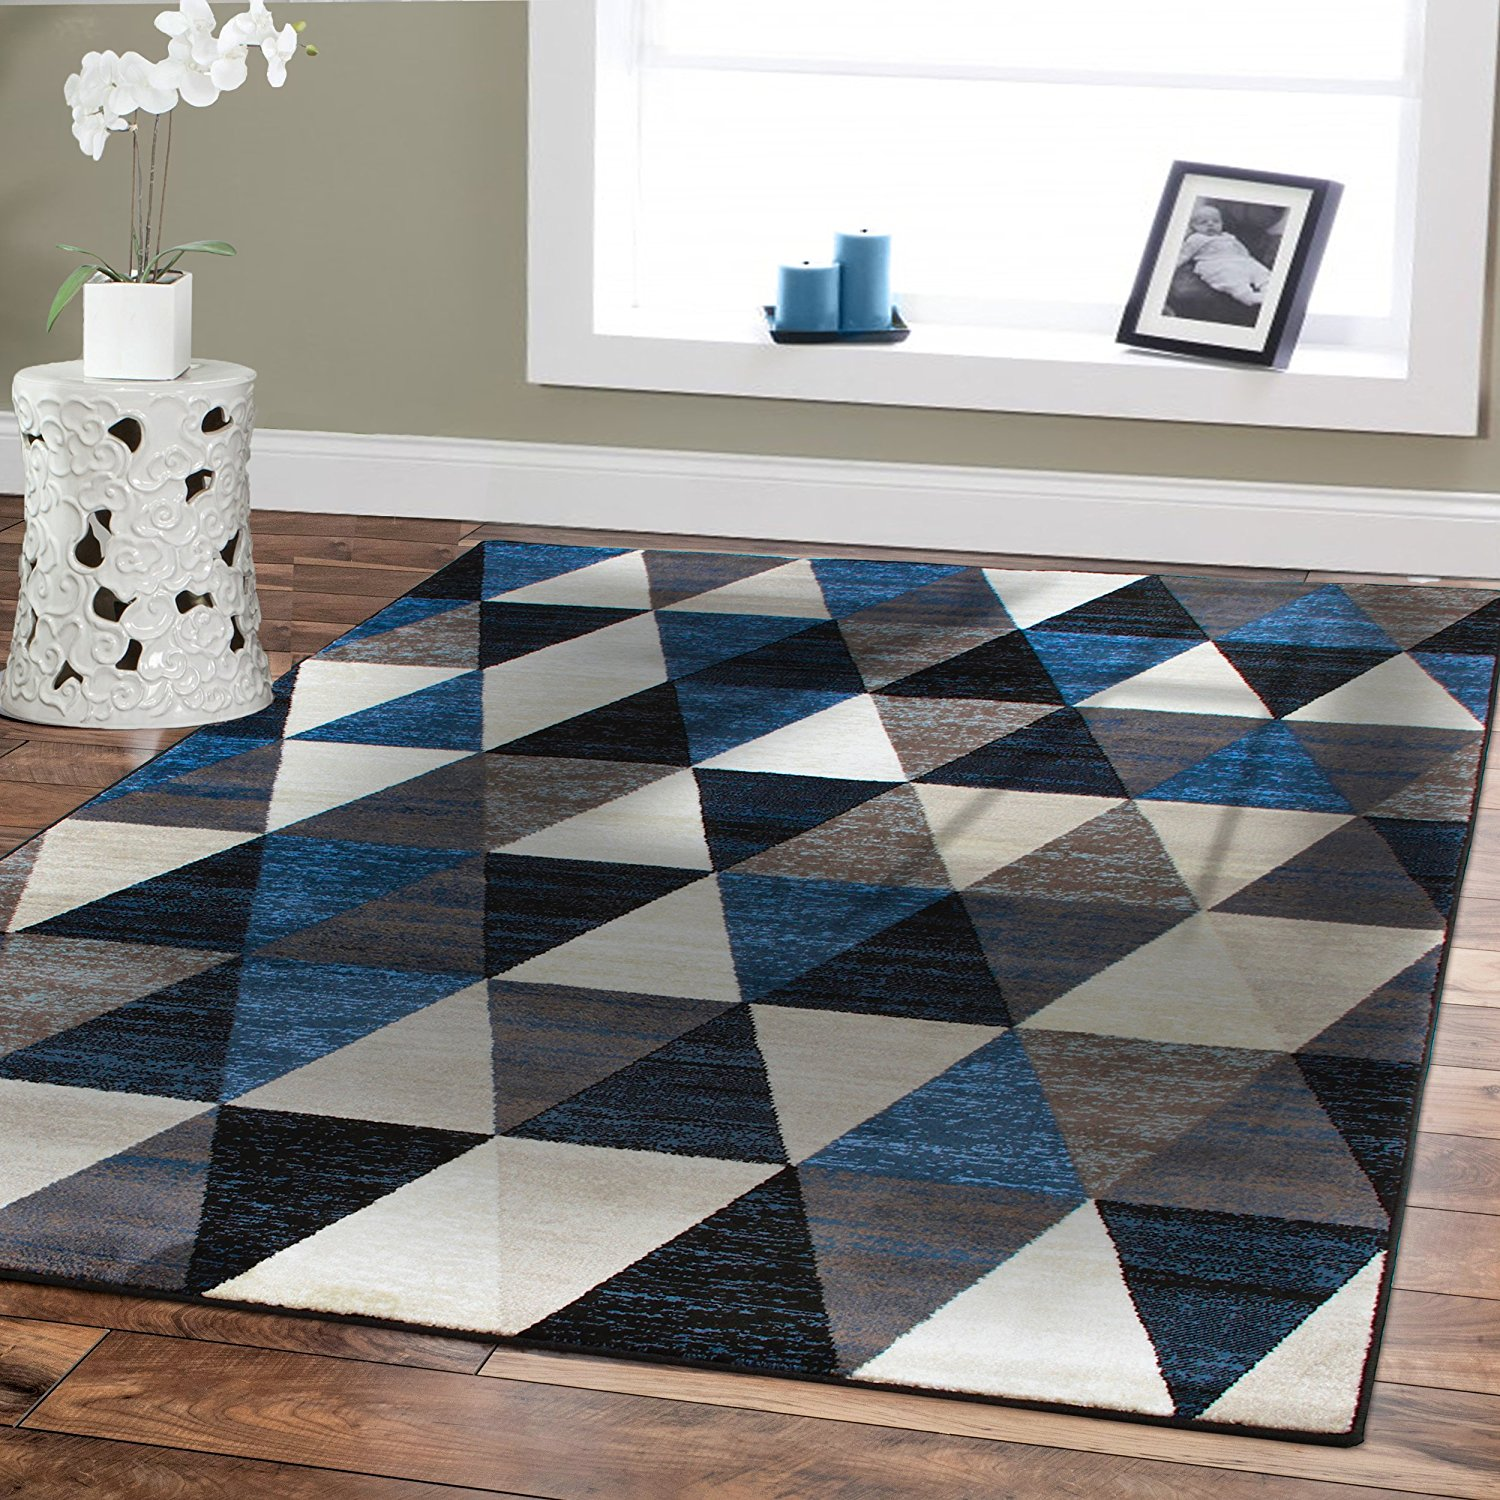 modern black area rug amazon.com: new premium rugs for bedroom carpet black triangle style 2x3  foyer YXBSIDB